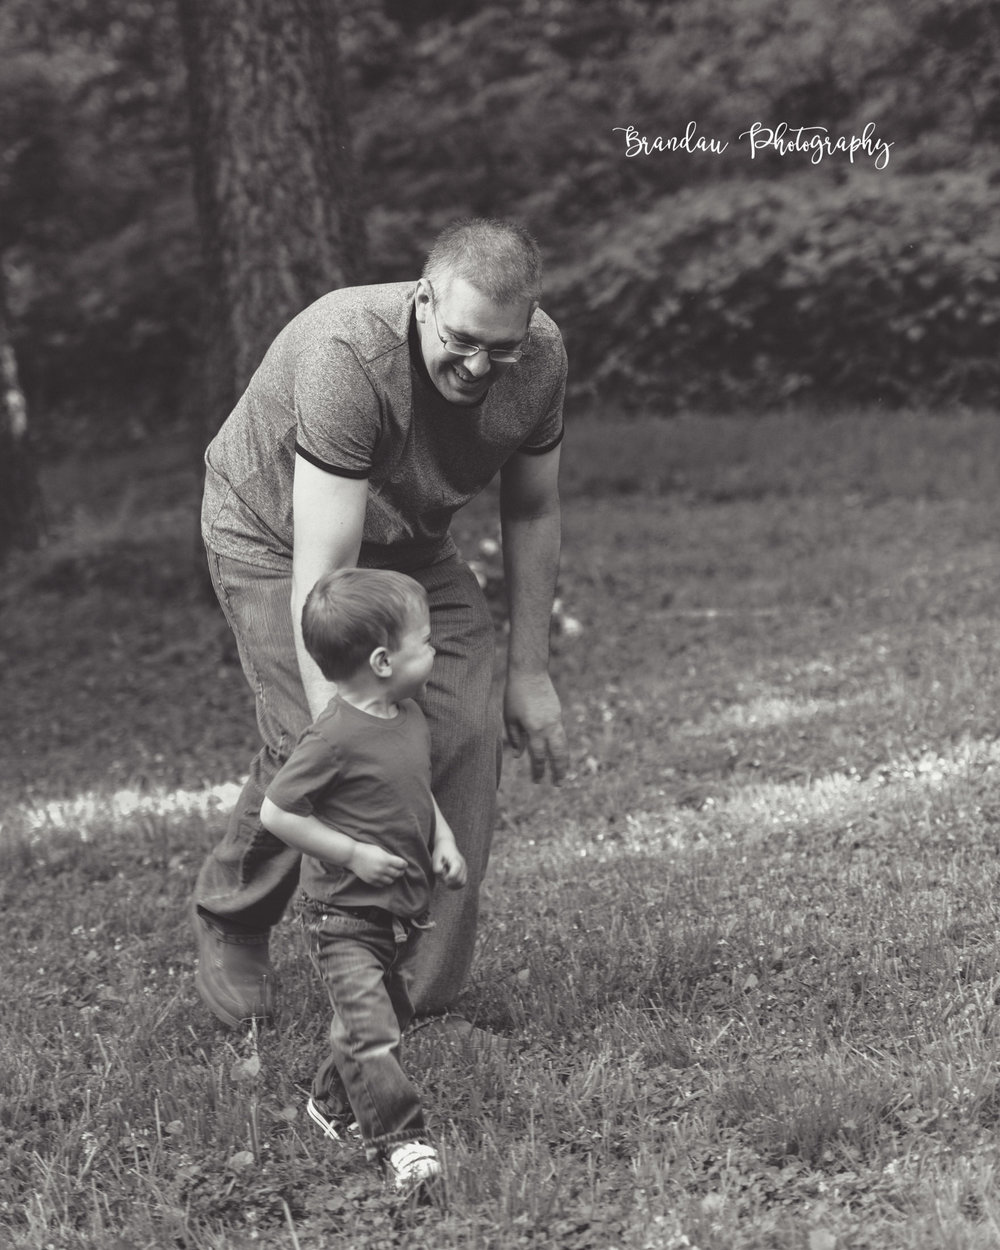 Brandau Photography - Dad and Son - Central Iowa - Ames Iowa